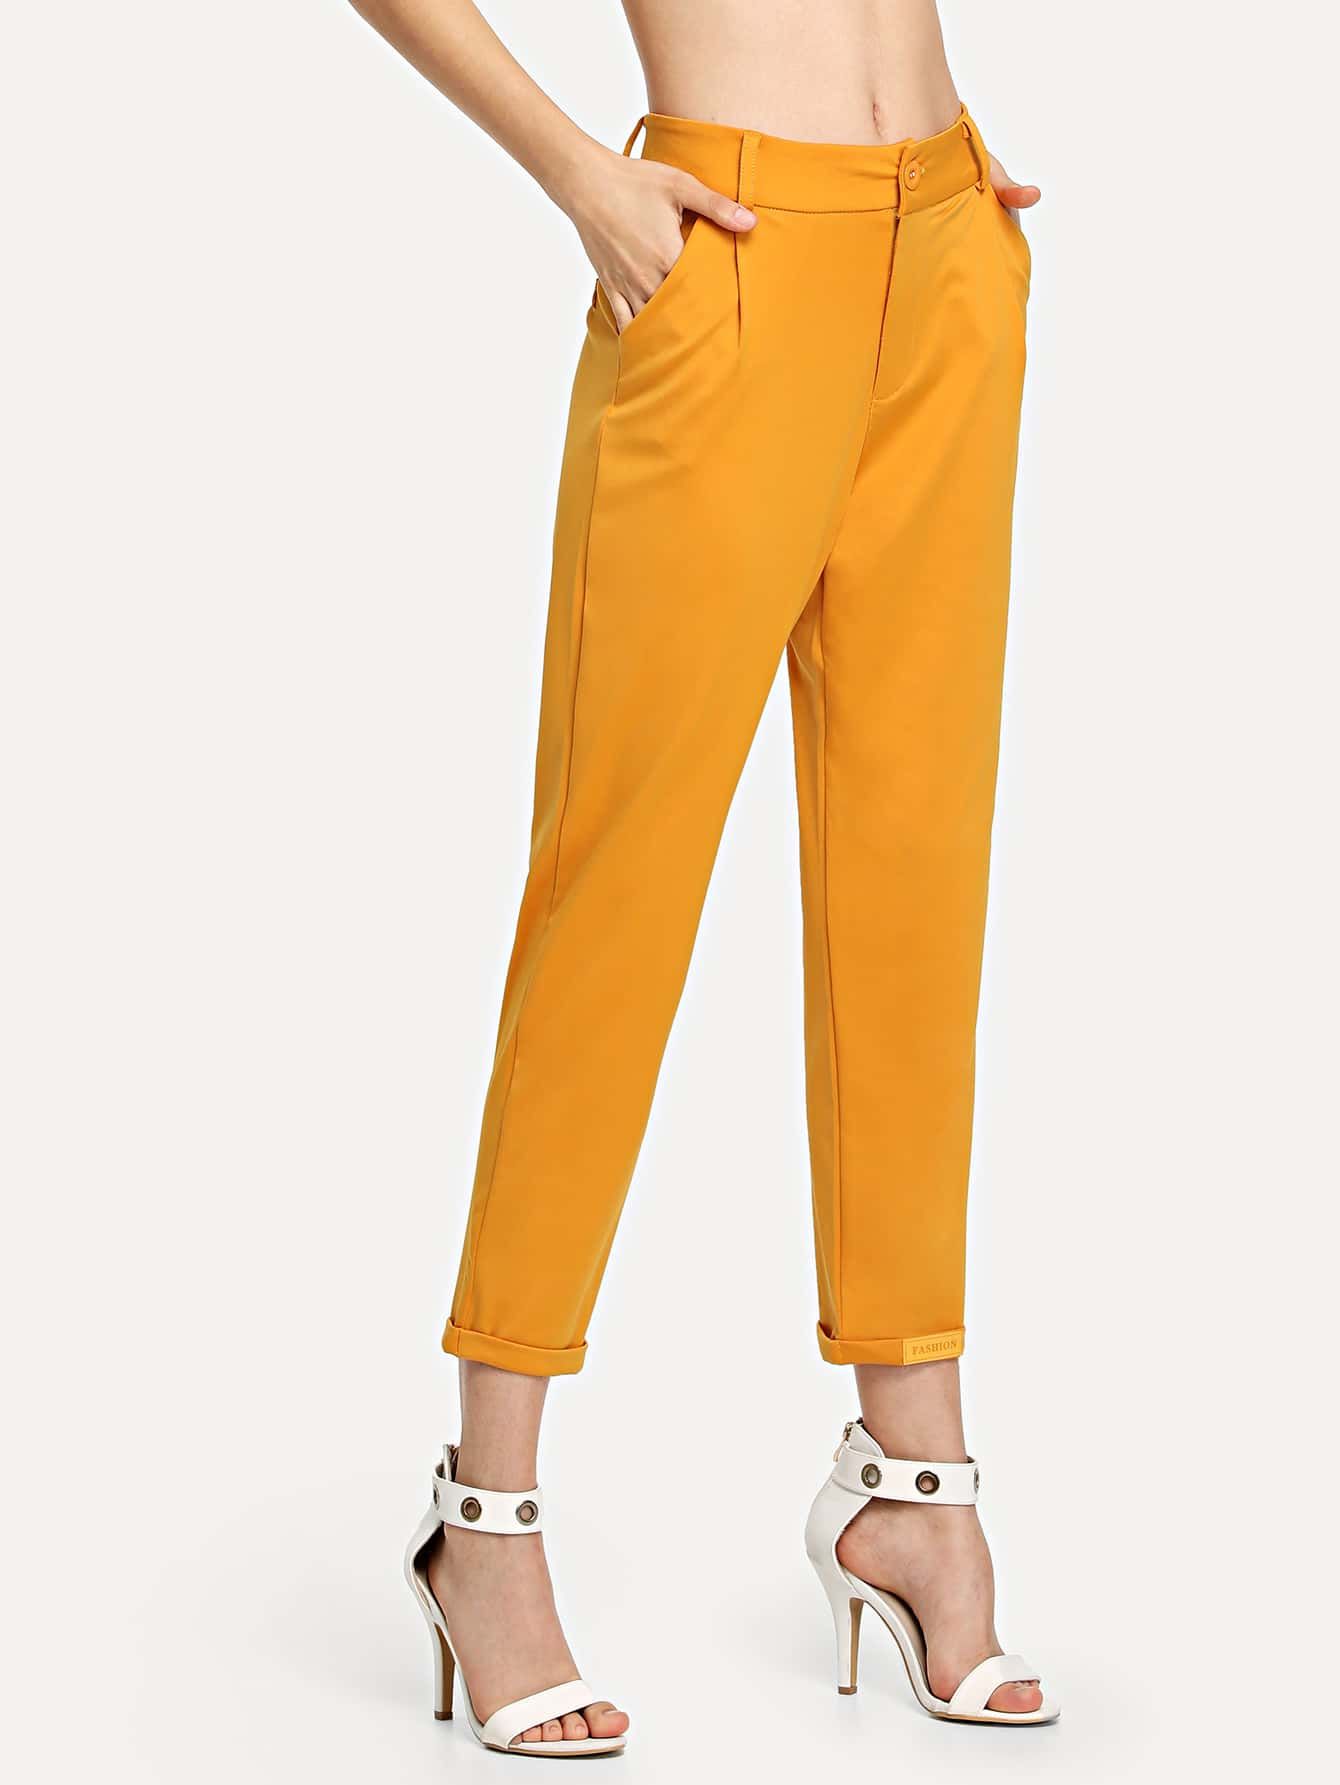 Cuffed Tapered Pants solid cuffed pants